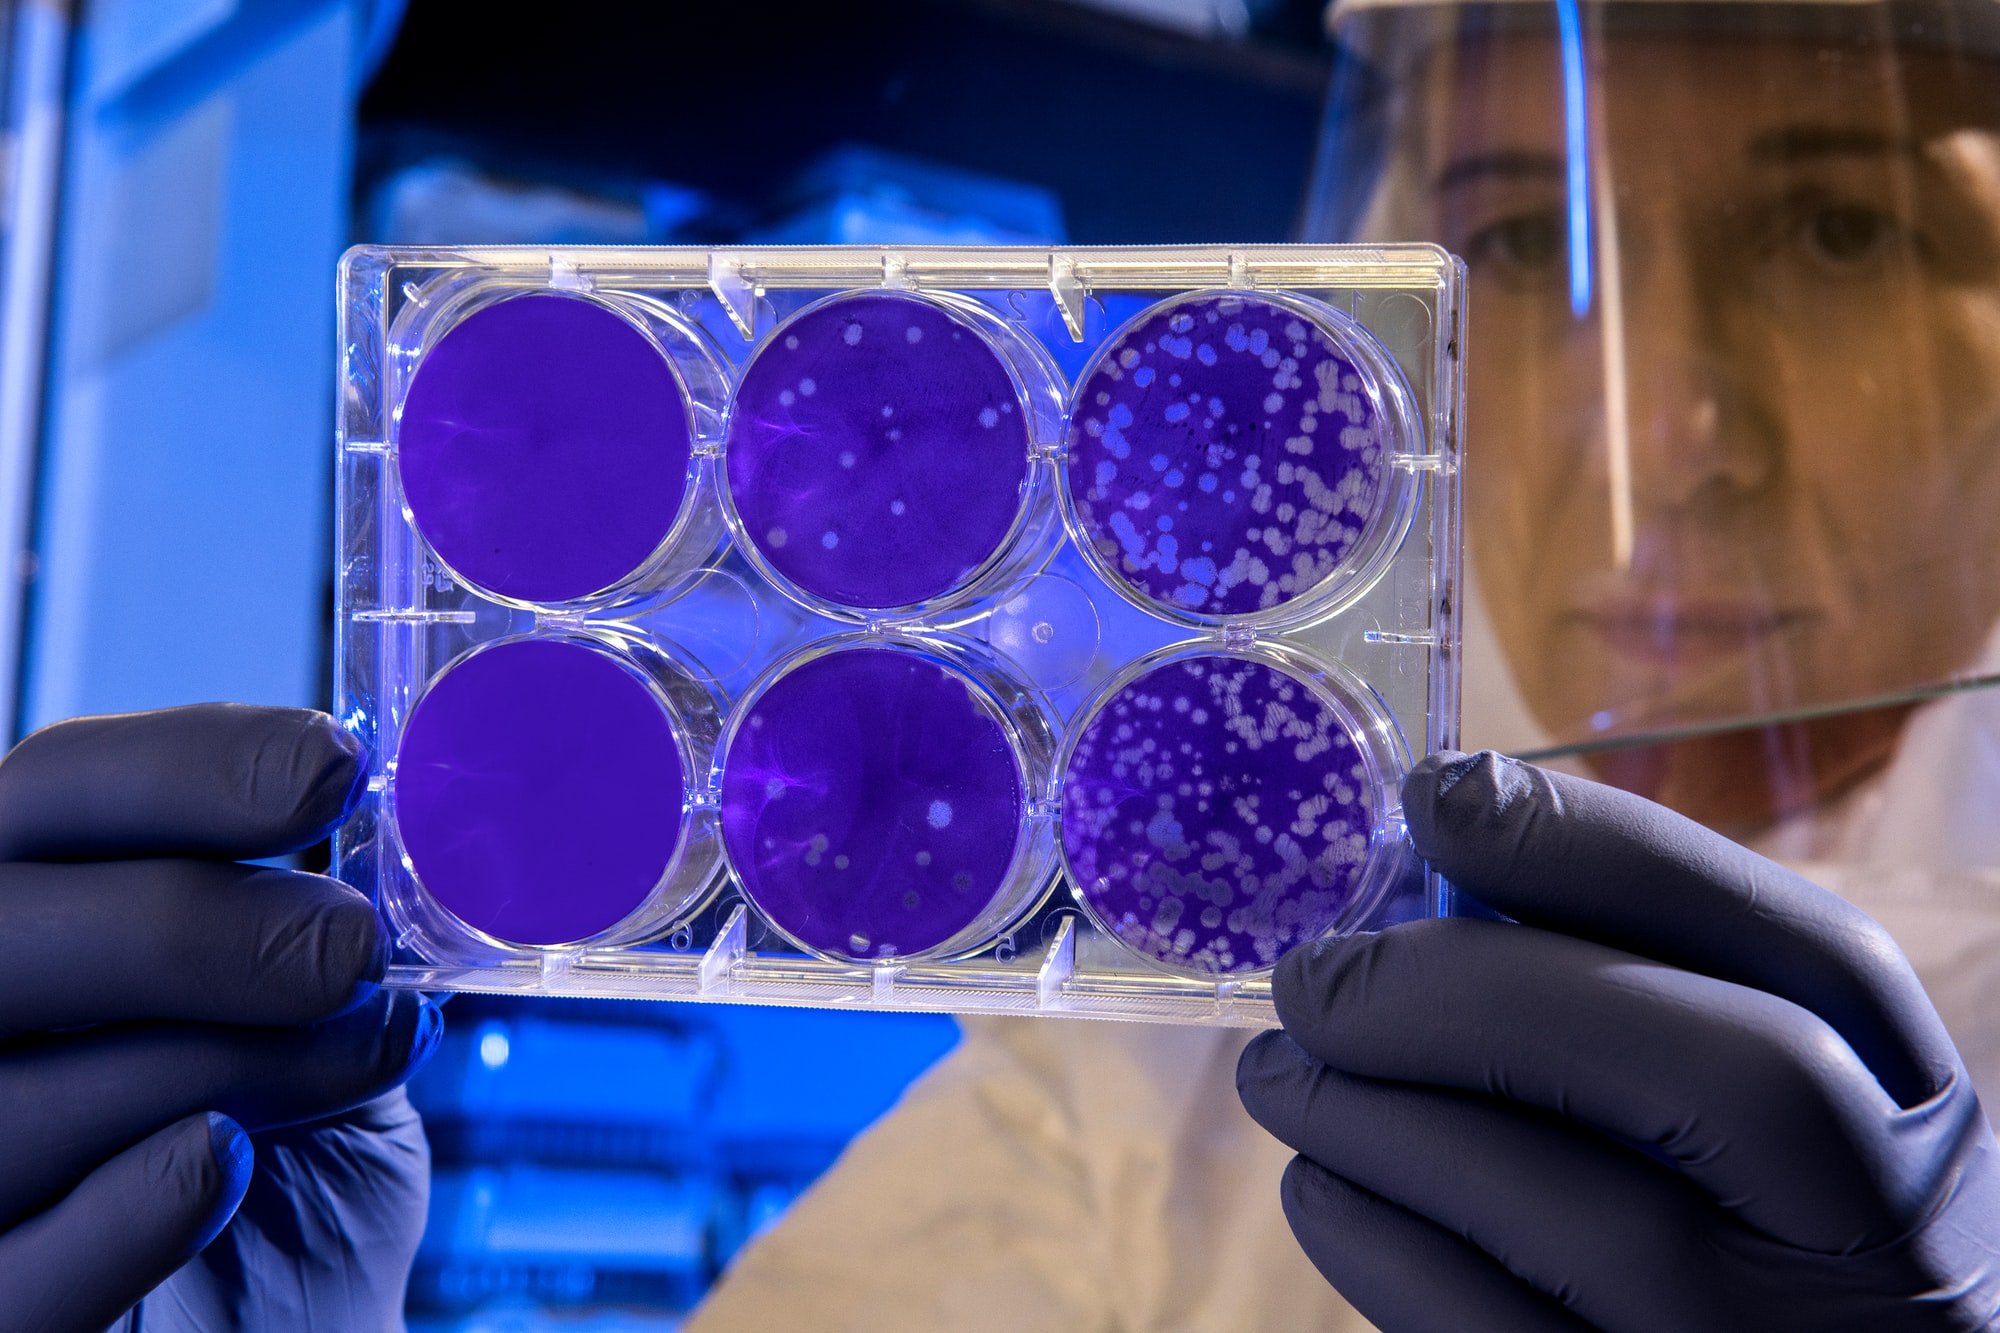 Scientist examines the result of a plaque assay, which is a test that allows scientists to count how many flu virus particles (virions) are in a mixture. To perform the test, scientists must first grow host cells that attach to the bottom of the plate, and then add viruses to each well so that the attached cells may be infected. After staining the uninfected cells purple, the scientist can count the clear spots on the plate, each representing a single virus particle.